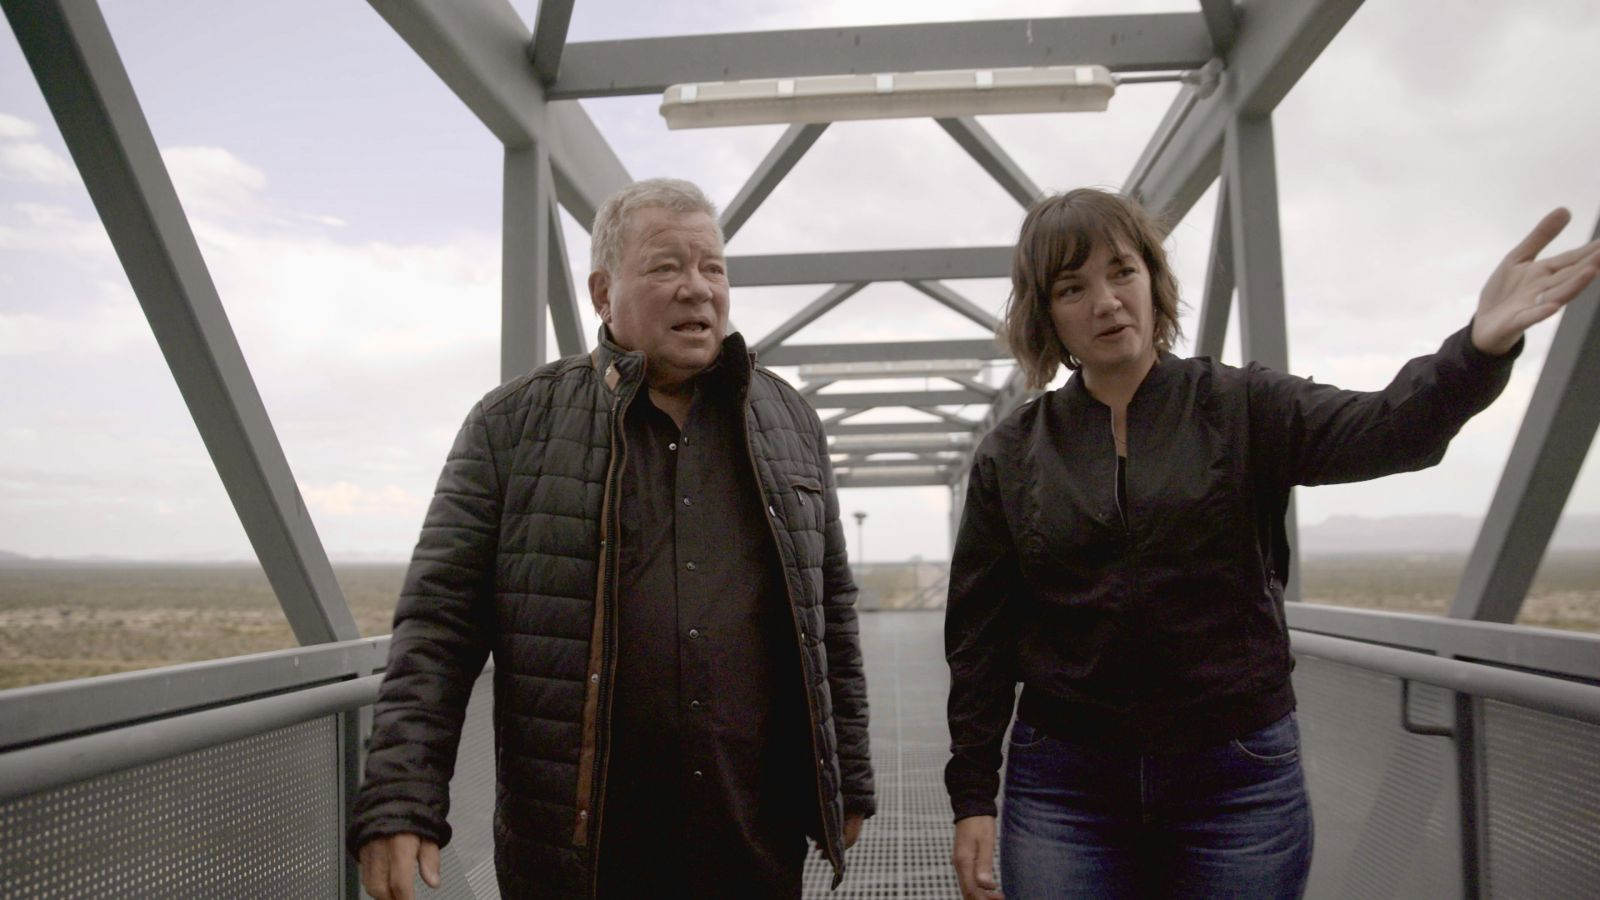 William Shatner is given a tour of Blue Origin's launch facility in West Texas. Credit: Blue Origin